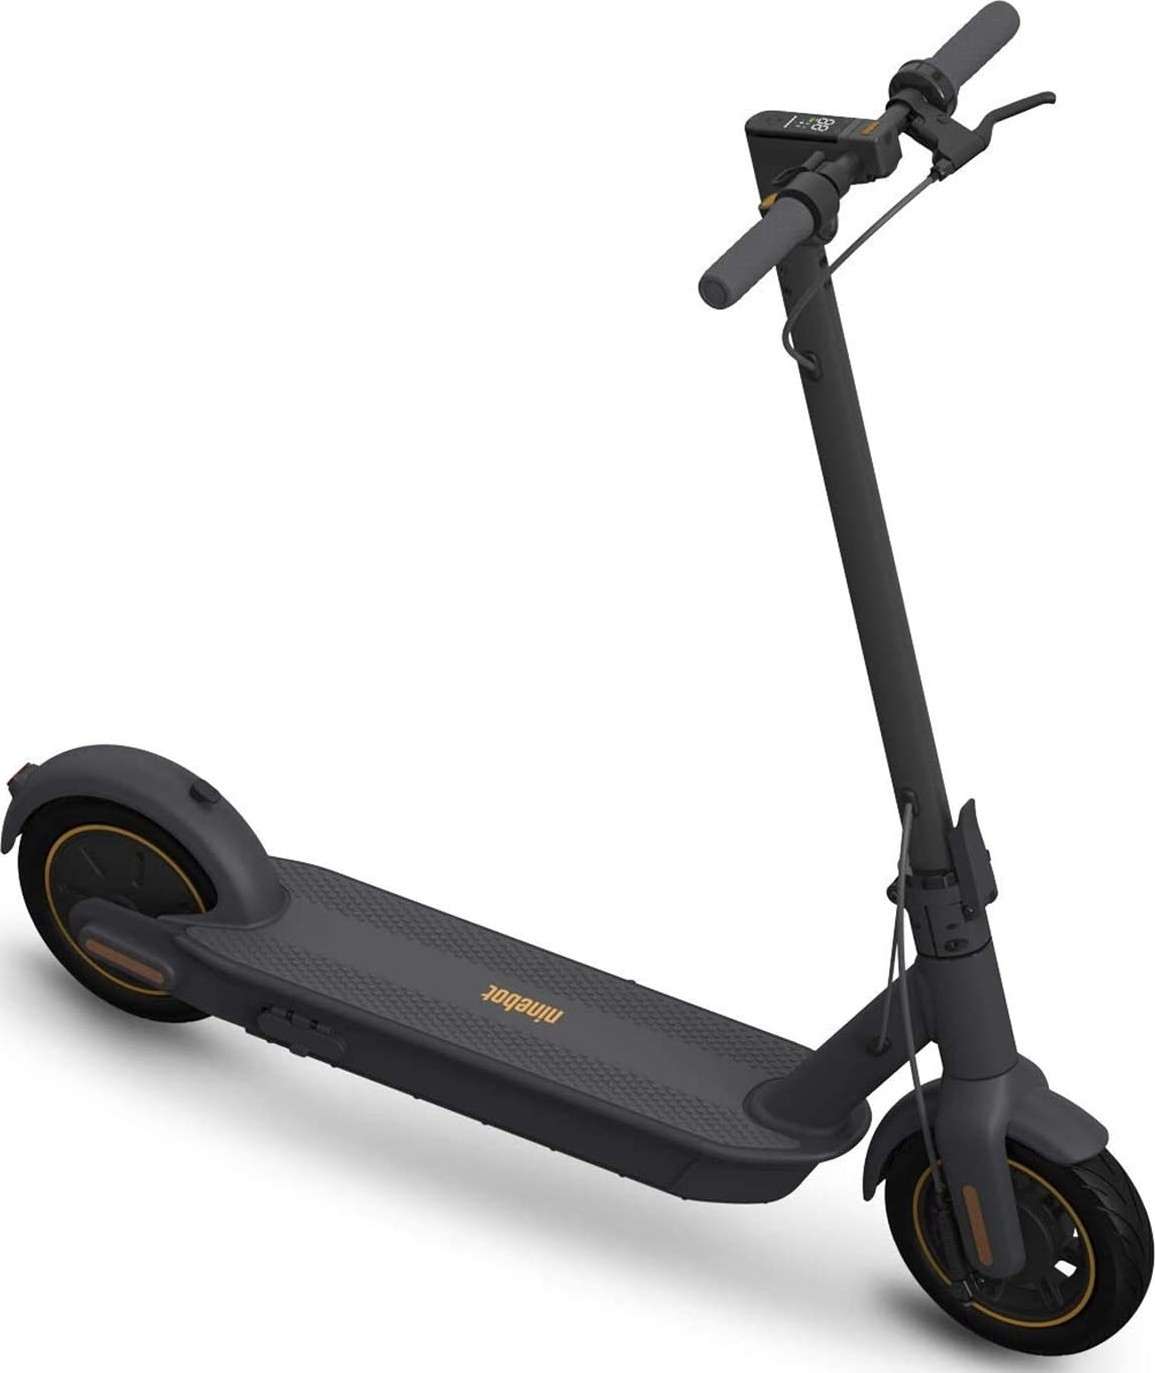 Segway Ninebot Max G30 Electric Scooter 25 Km H Max Speed 65 Km Mileage Range Built